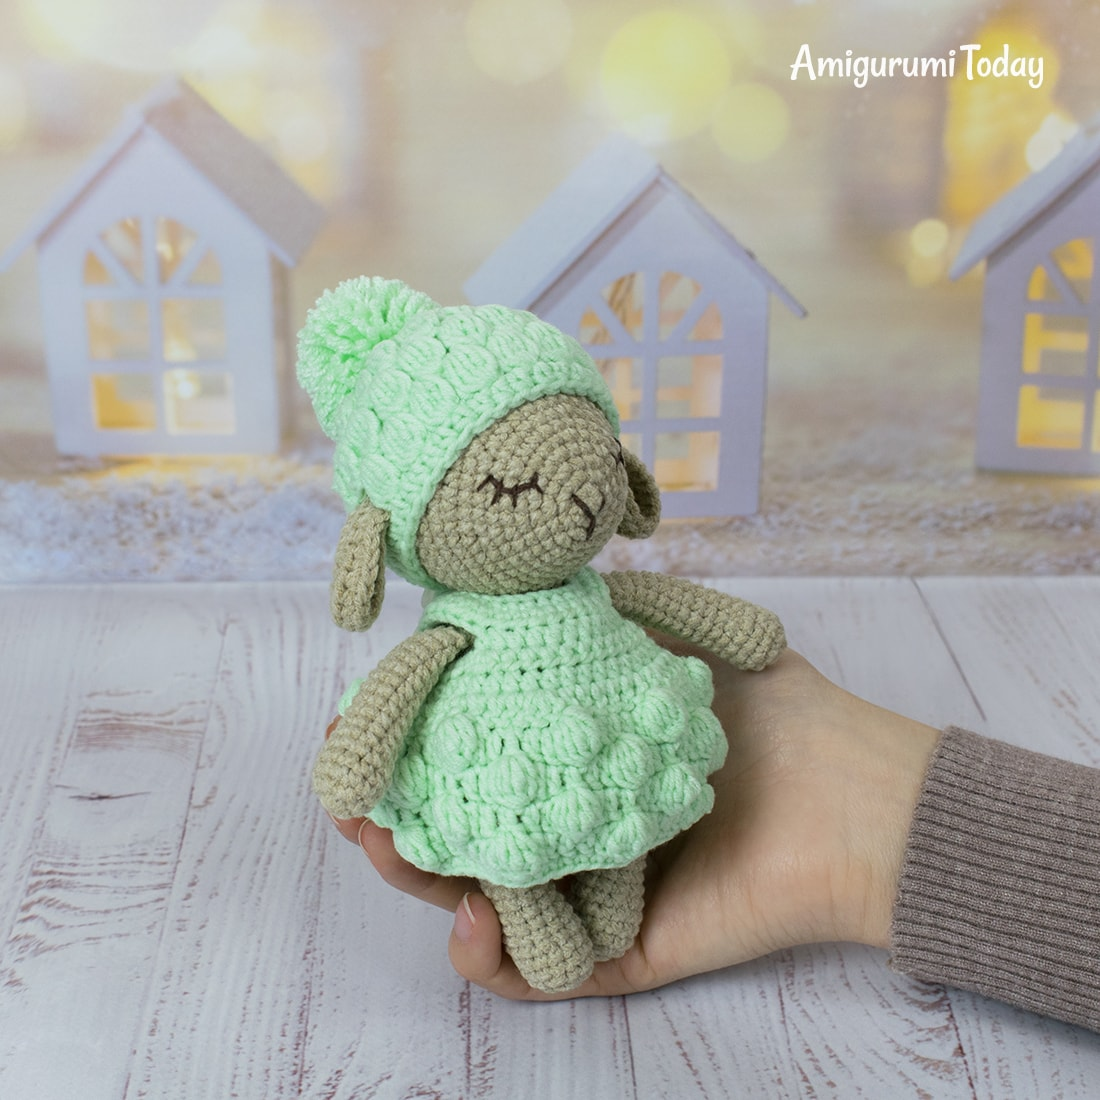 Amigurumi bunny in pullover pattern - Amigurumi Today | 1100x1100